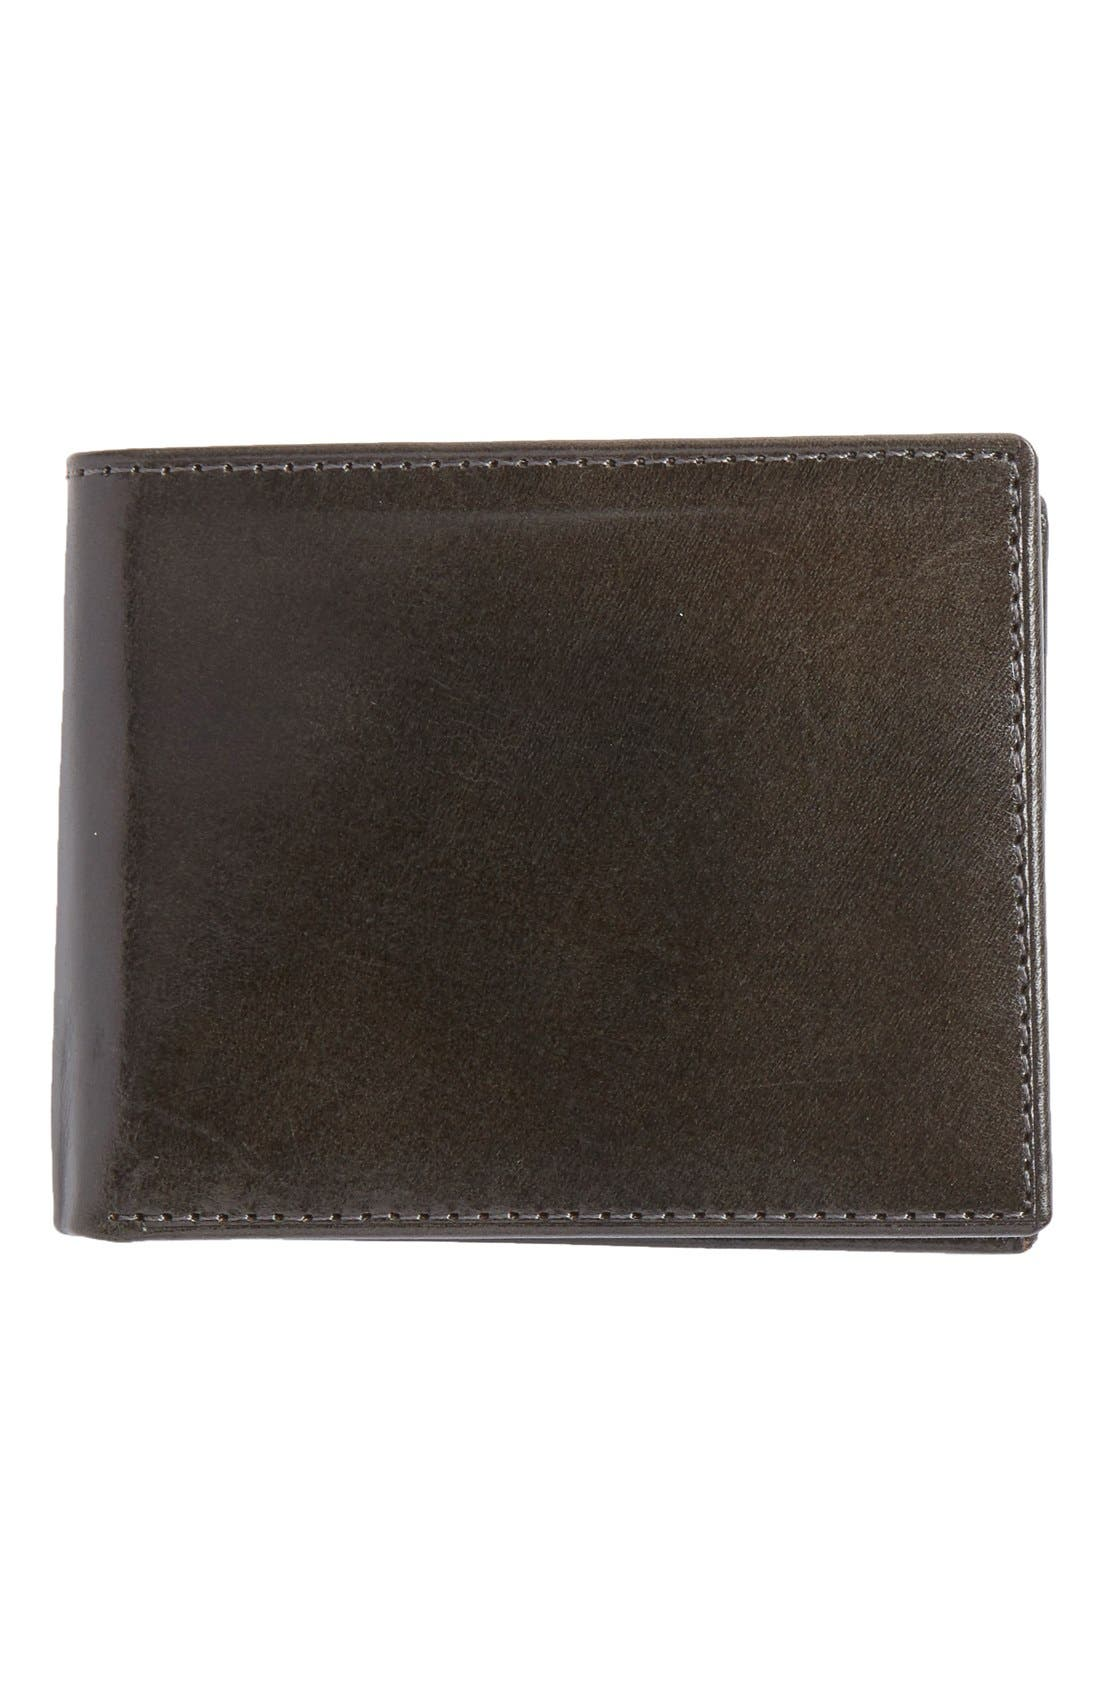 Flip Billfold Leather Wallet,                         Main,                         color, 020